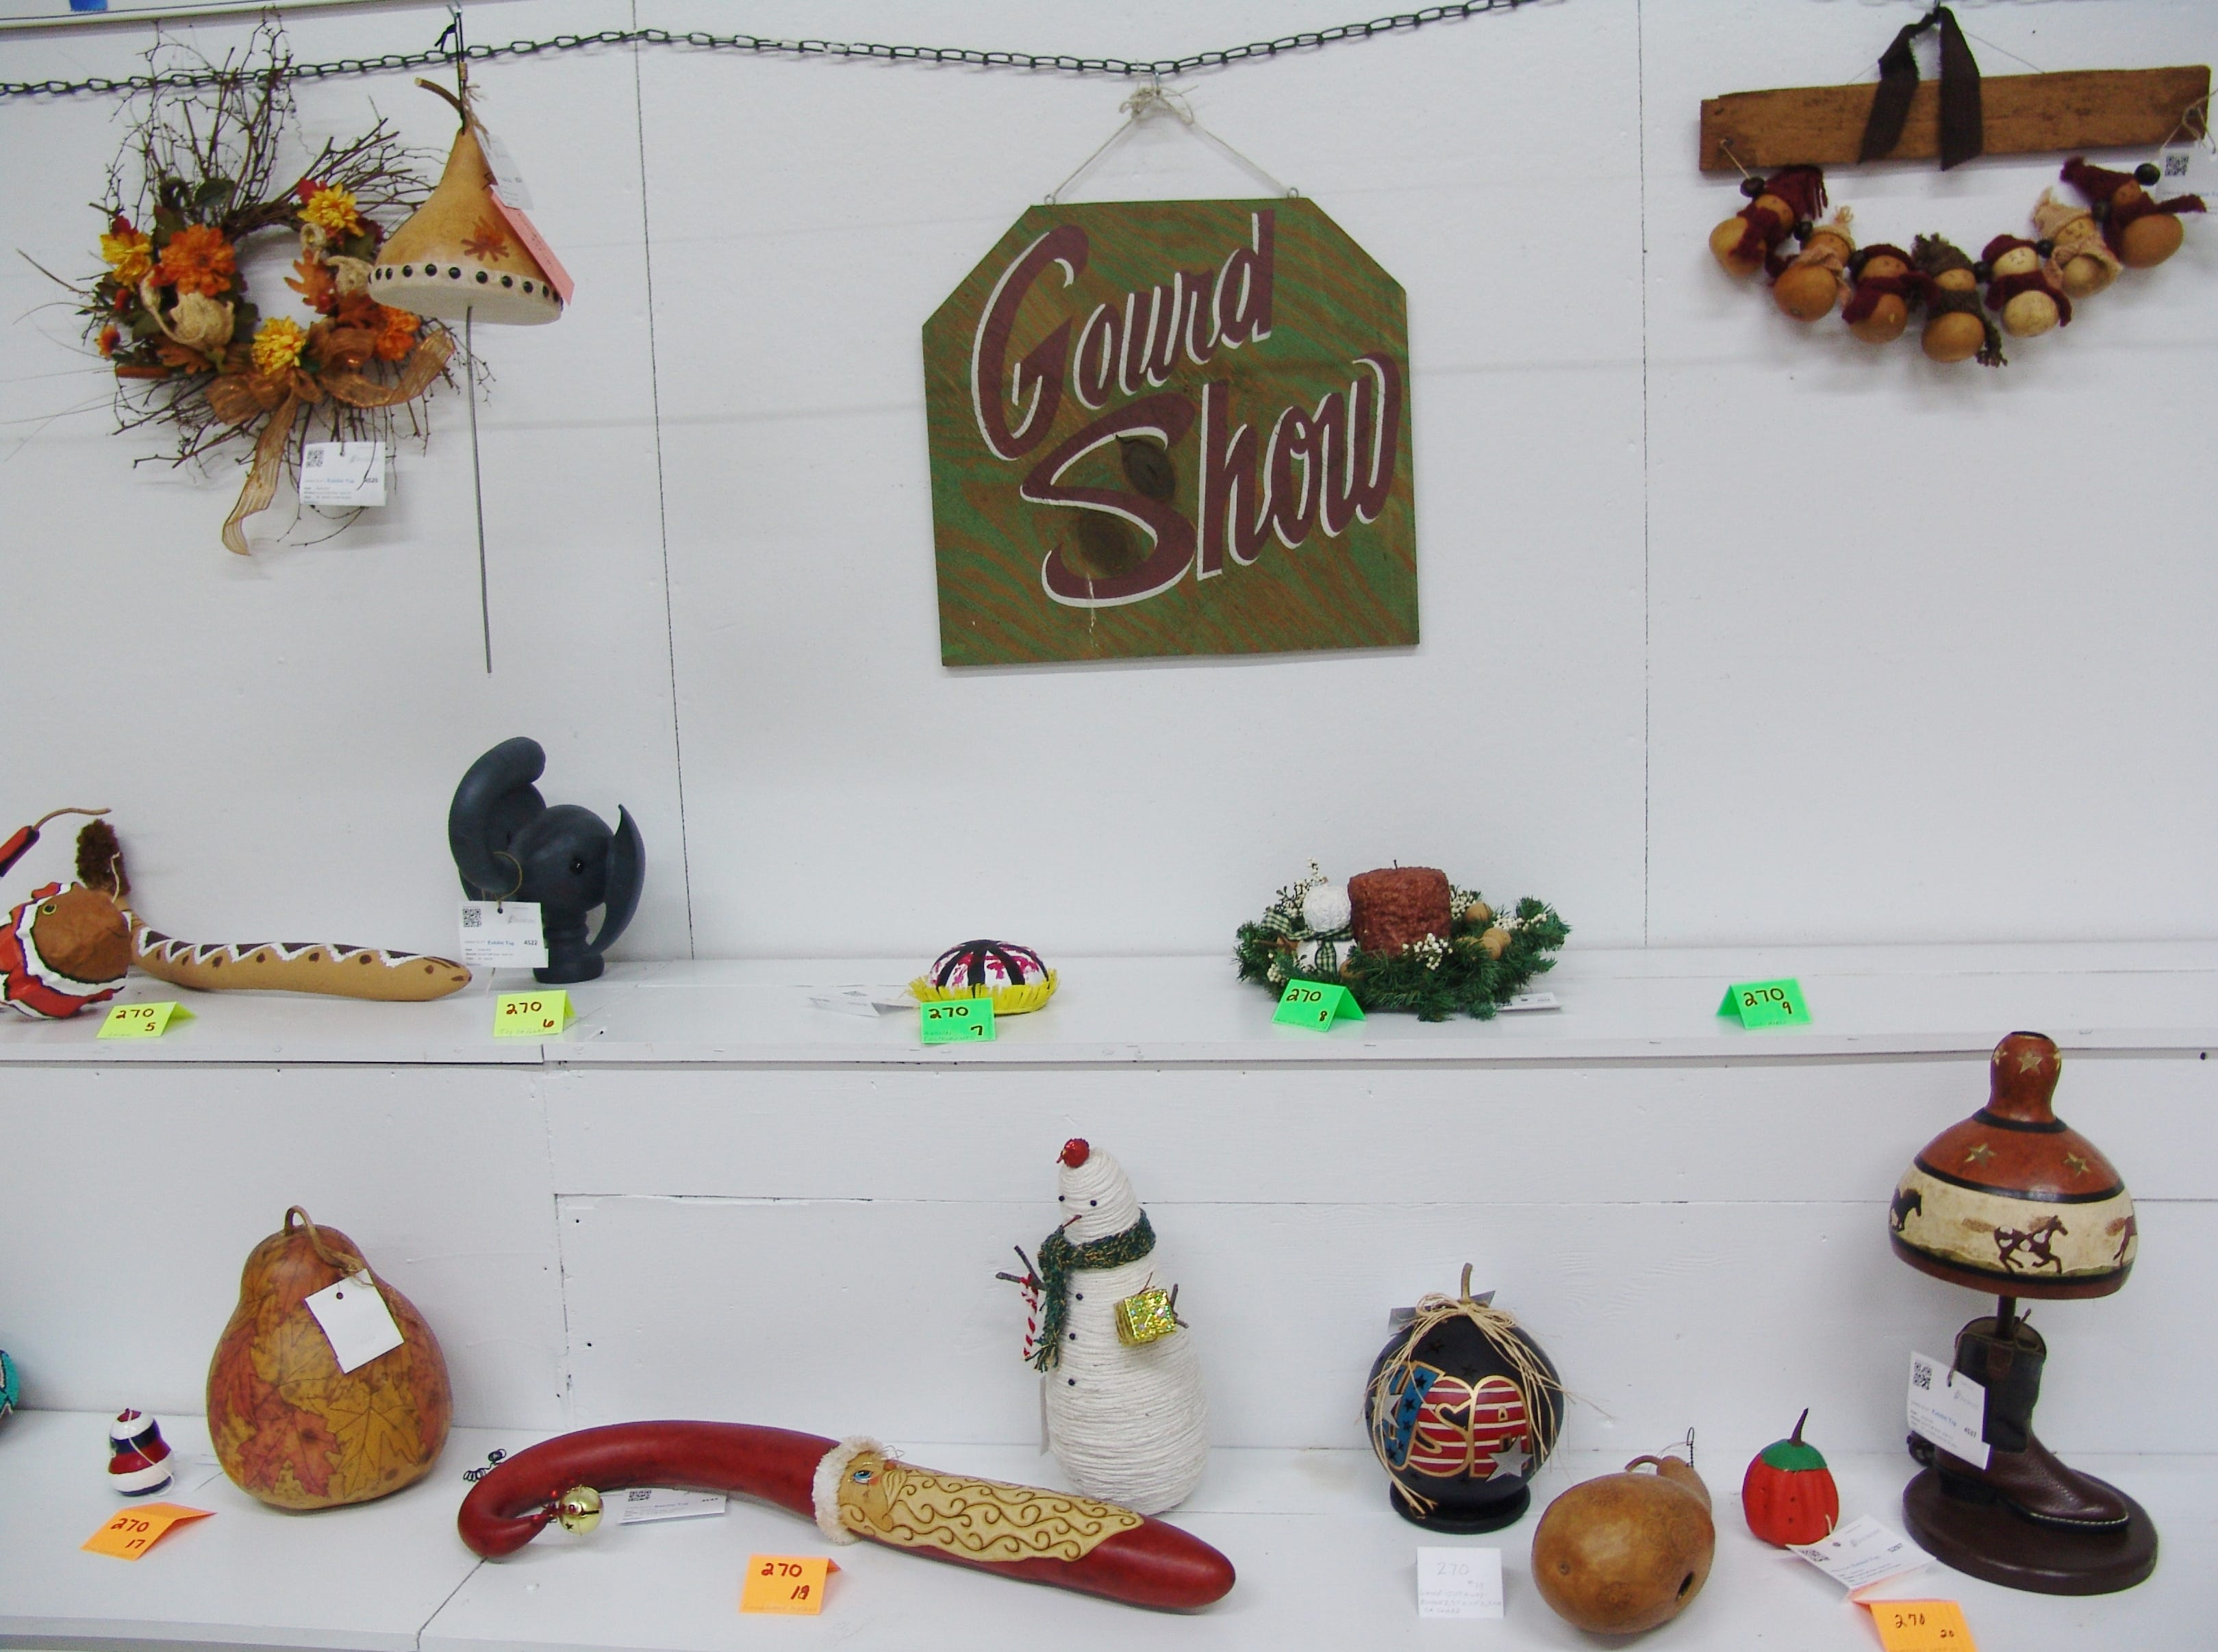 Exhibits in the Gourd Craft Show line a table in the Art Hall before Friday's judging.